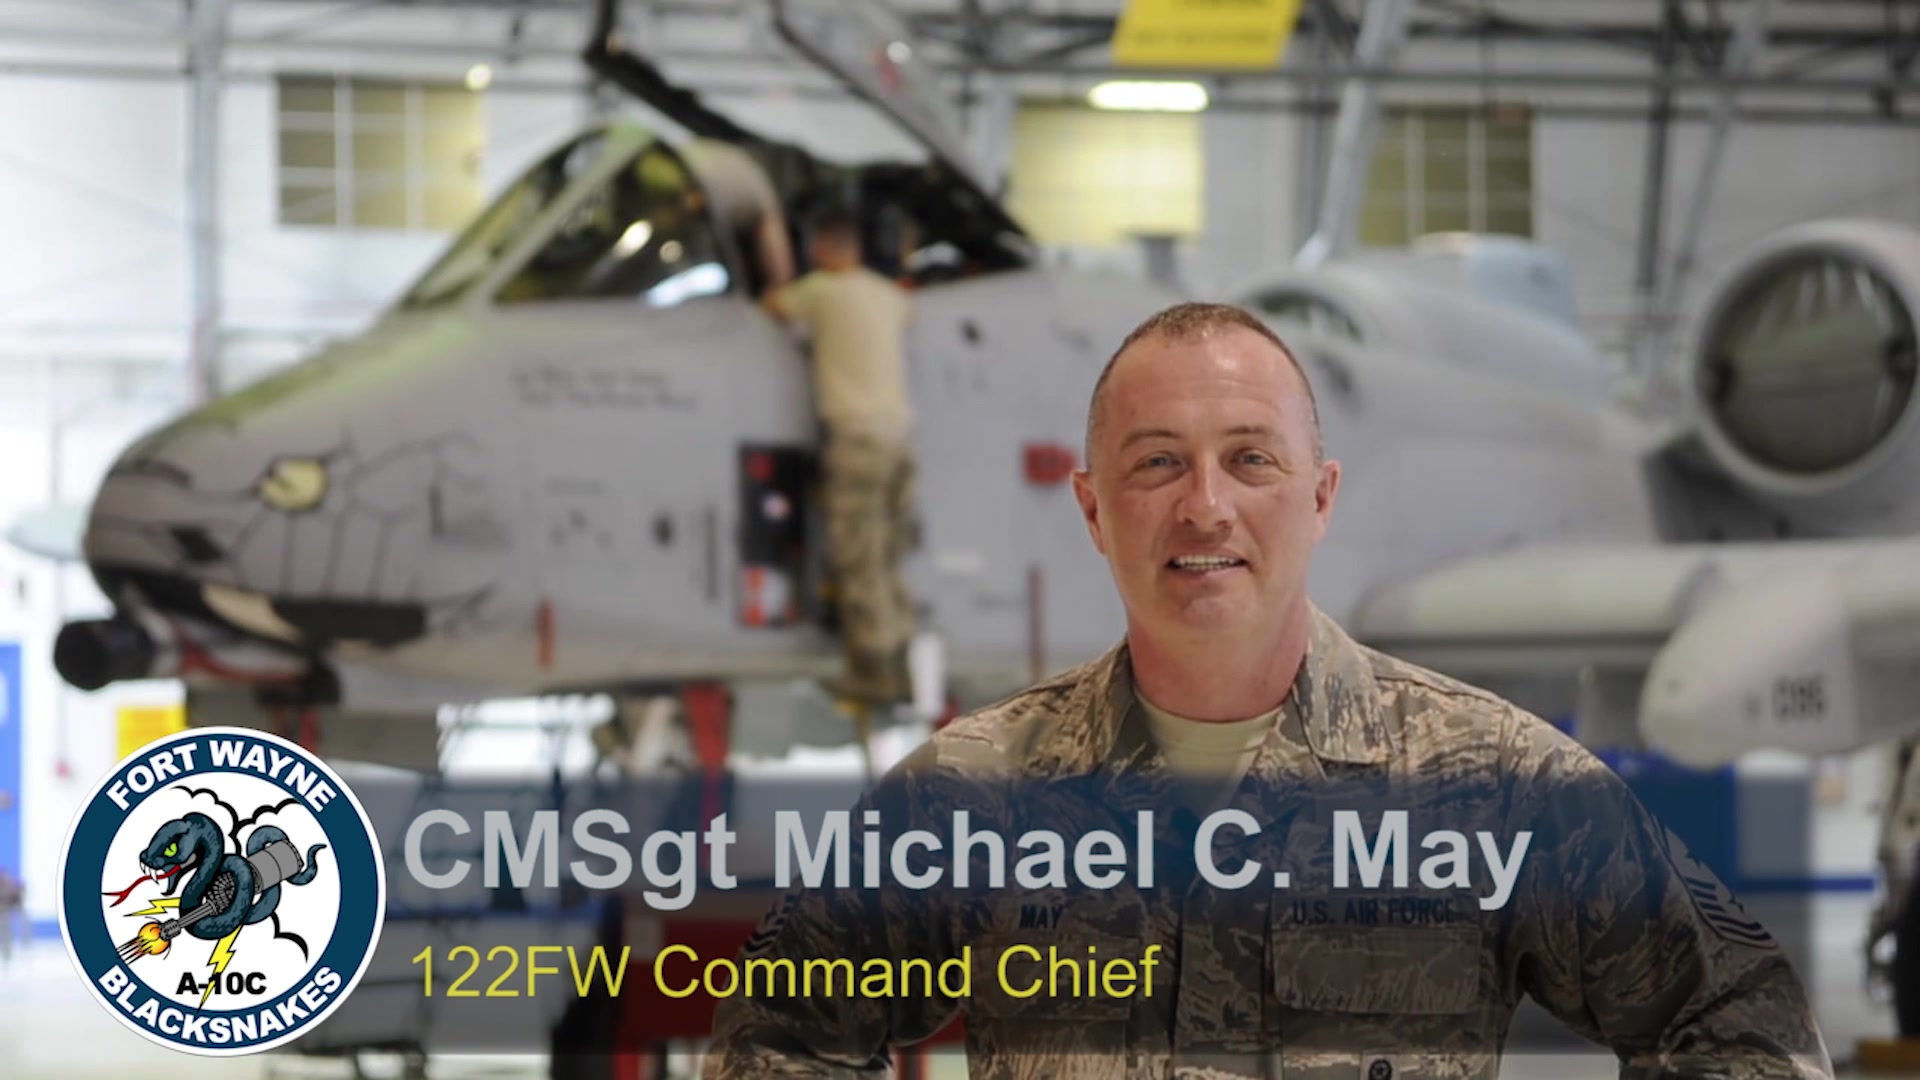 CMSgt. Michael May, Command Chief, 122nd Fighter Wing, Fort Wayne, Ind. shares a message with the Airmen at the 122nd Fighter Wing.